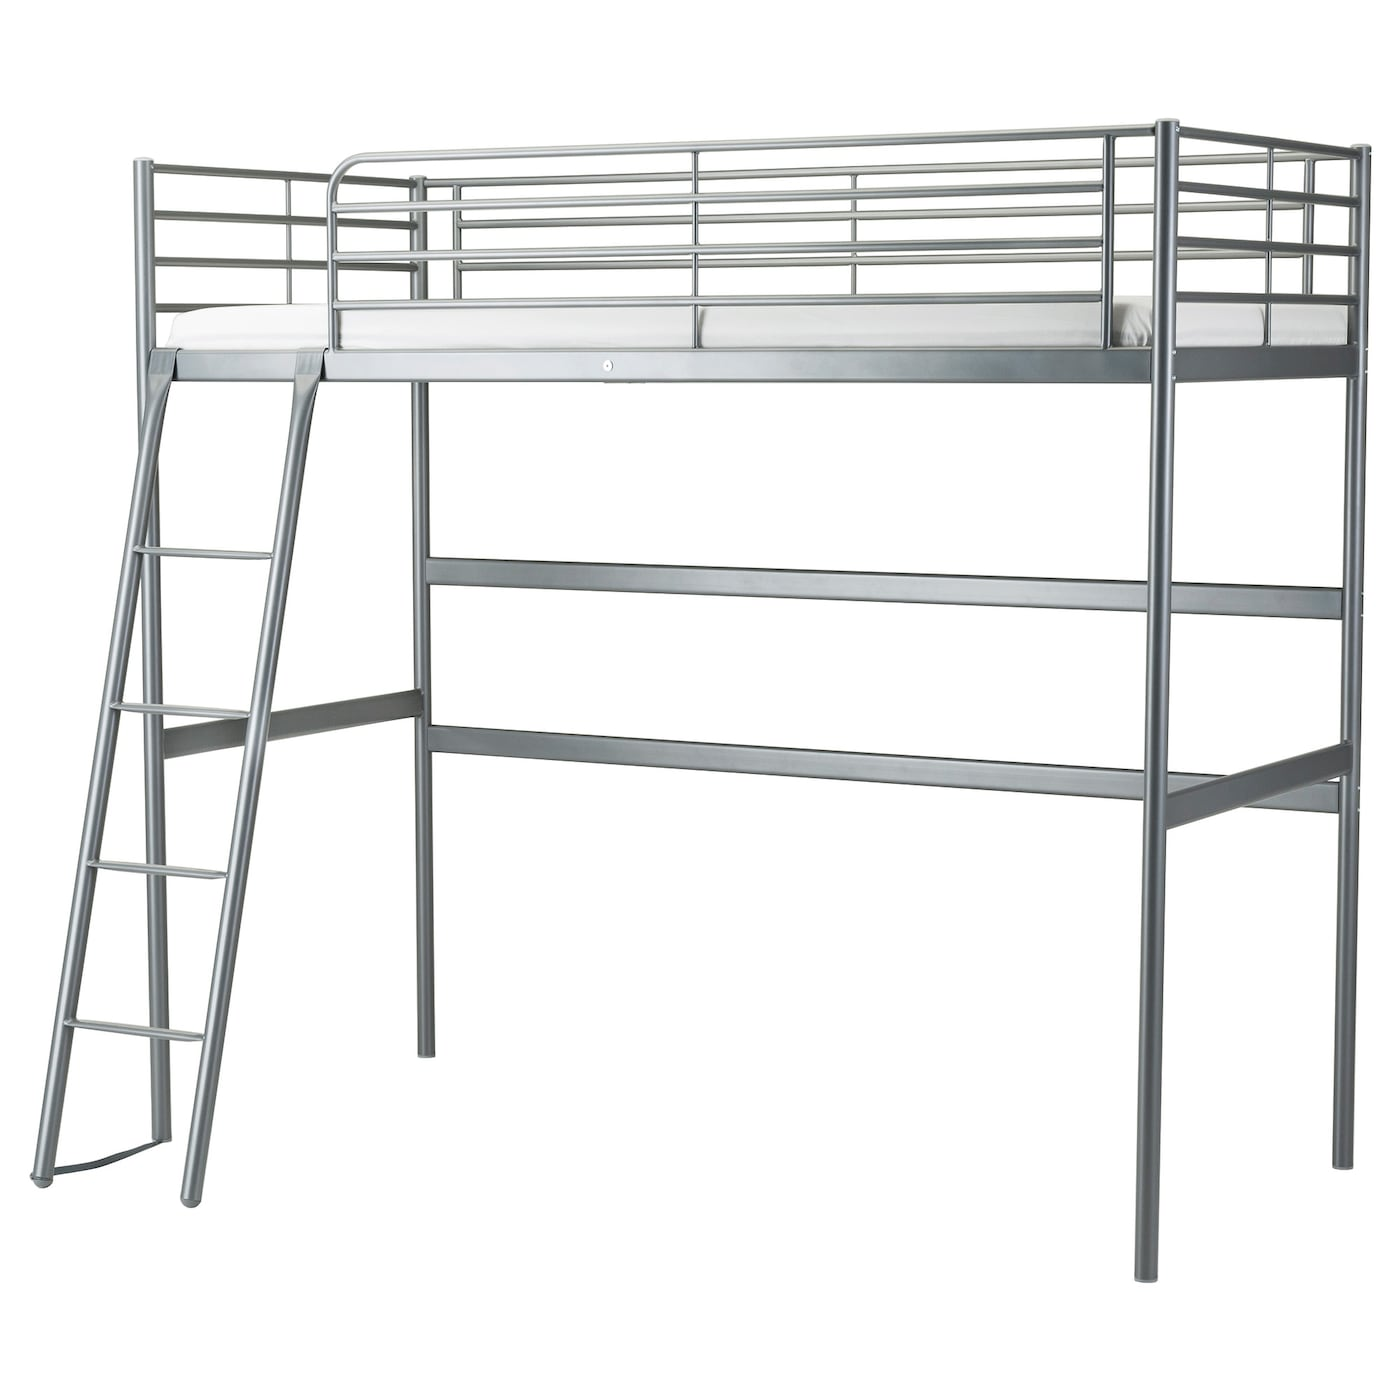 ikea svrta loft bed frame the ladder mounts on the right or the left side of - Raised Bed Frame Full